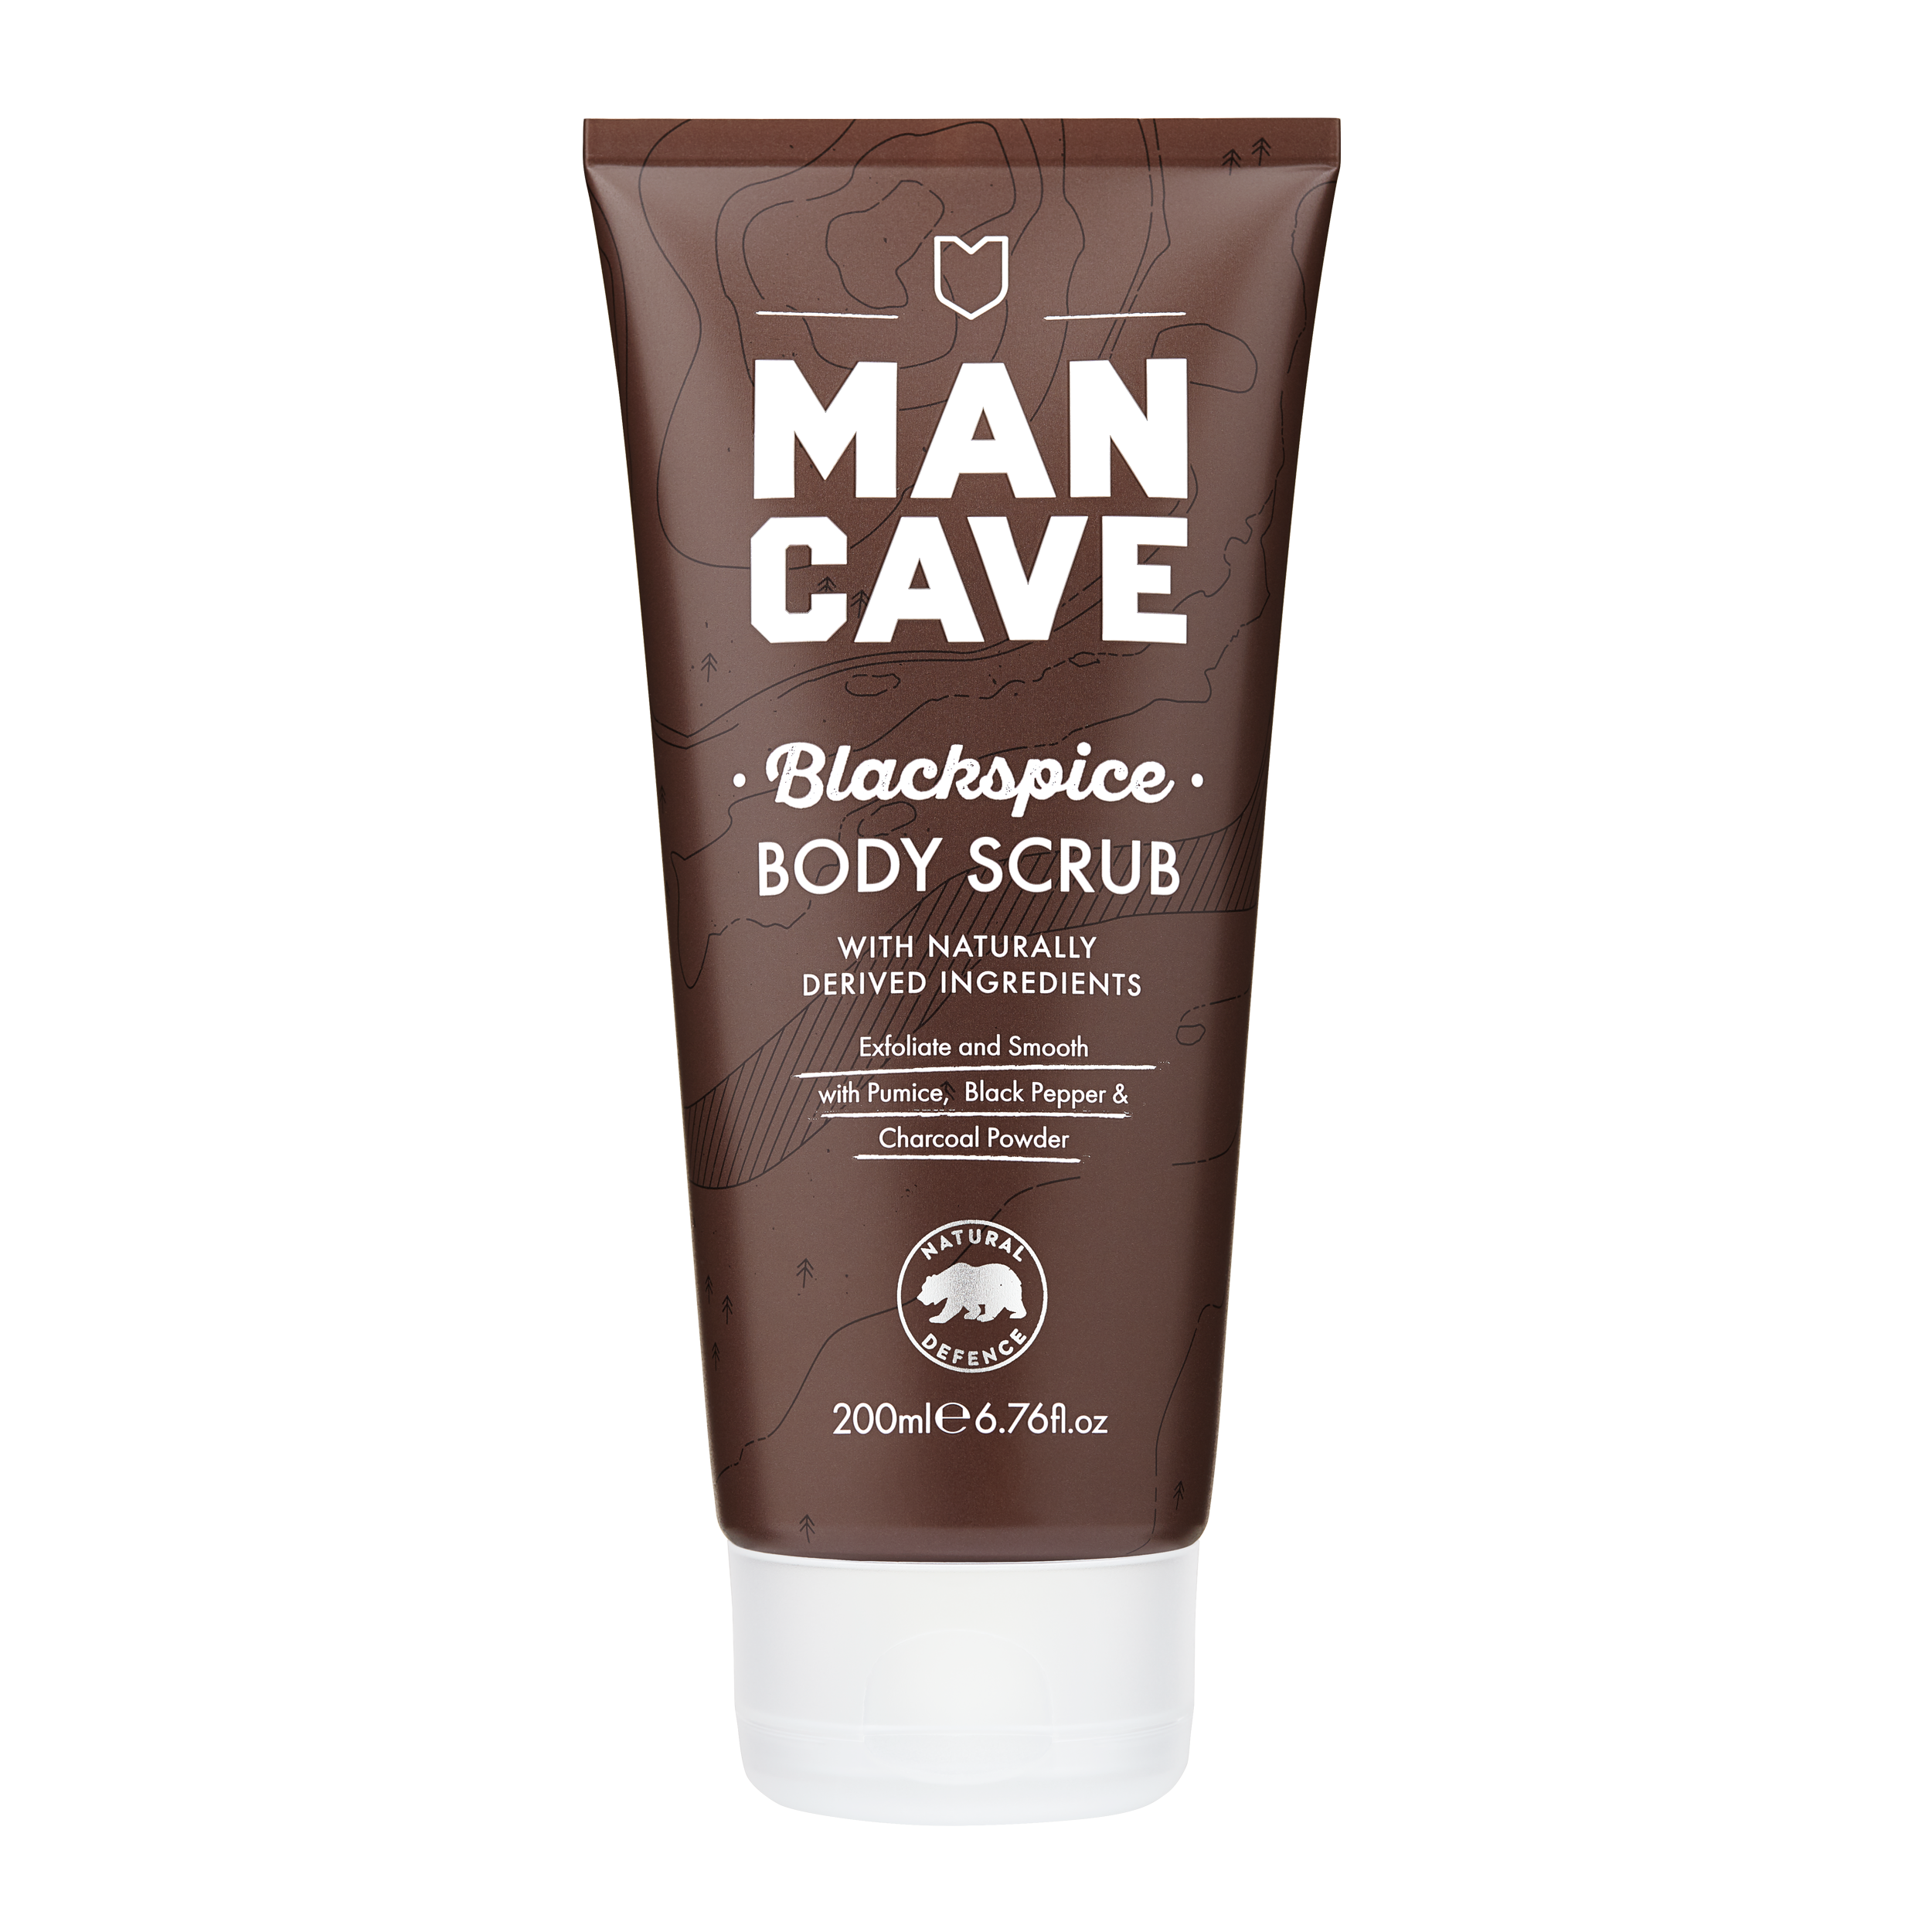 The ManCave Blackspice body scrub 100% recyclable brown tube. Cruelty free certified and vegan friendly.